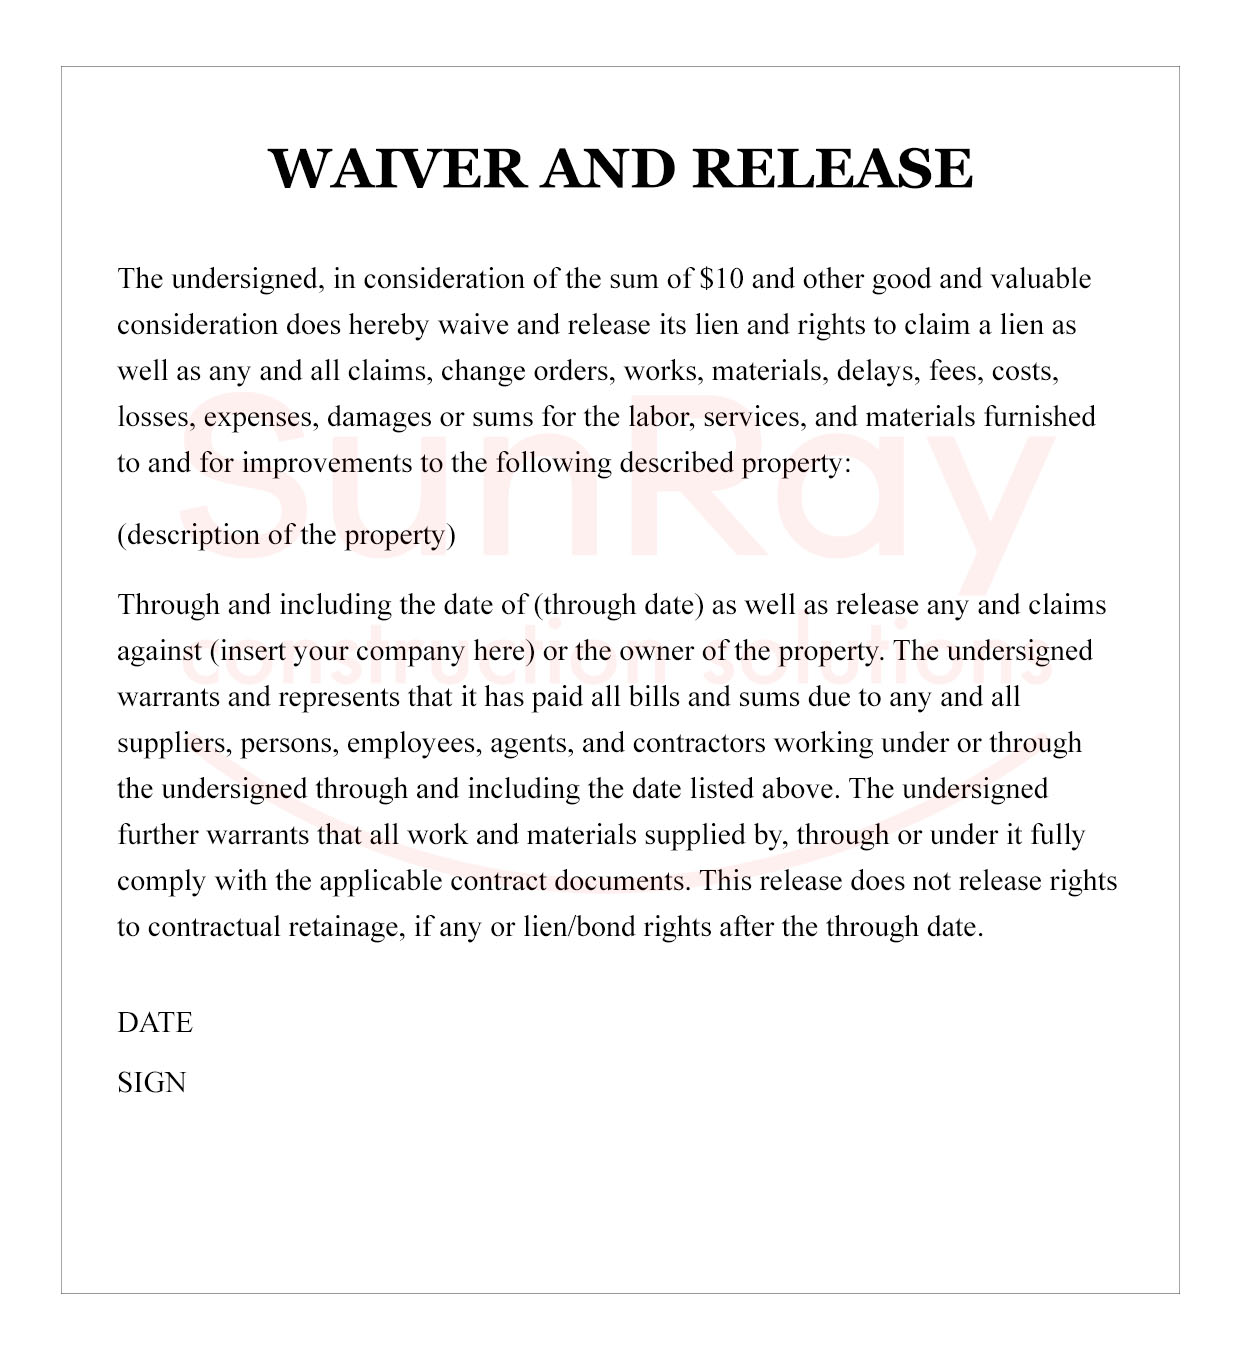 Waiver and Release